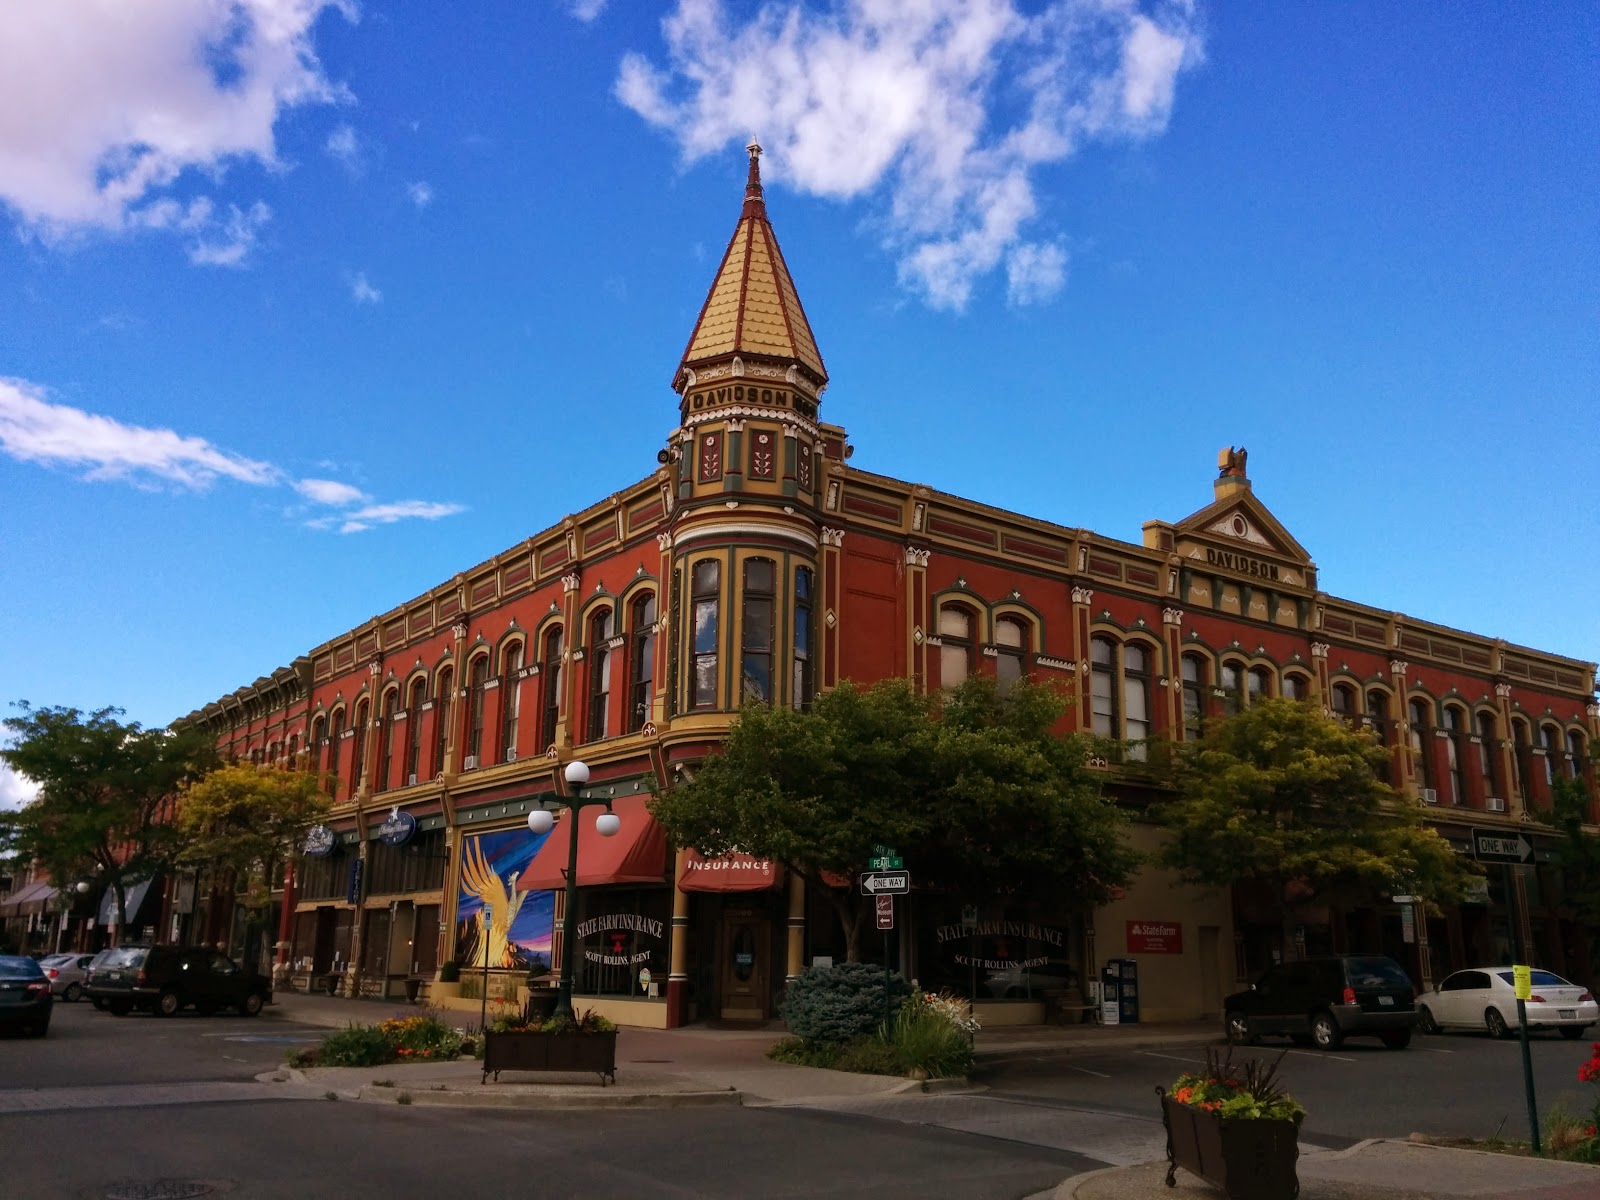 Buildings and structures in Kittitas County, Washington